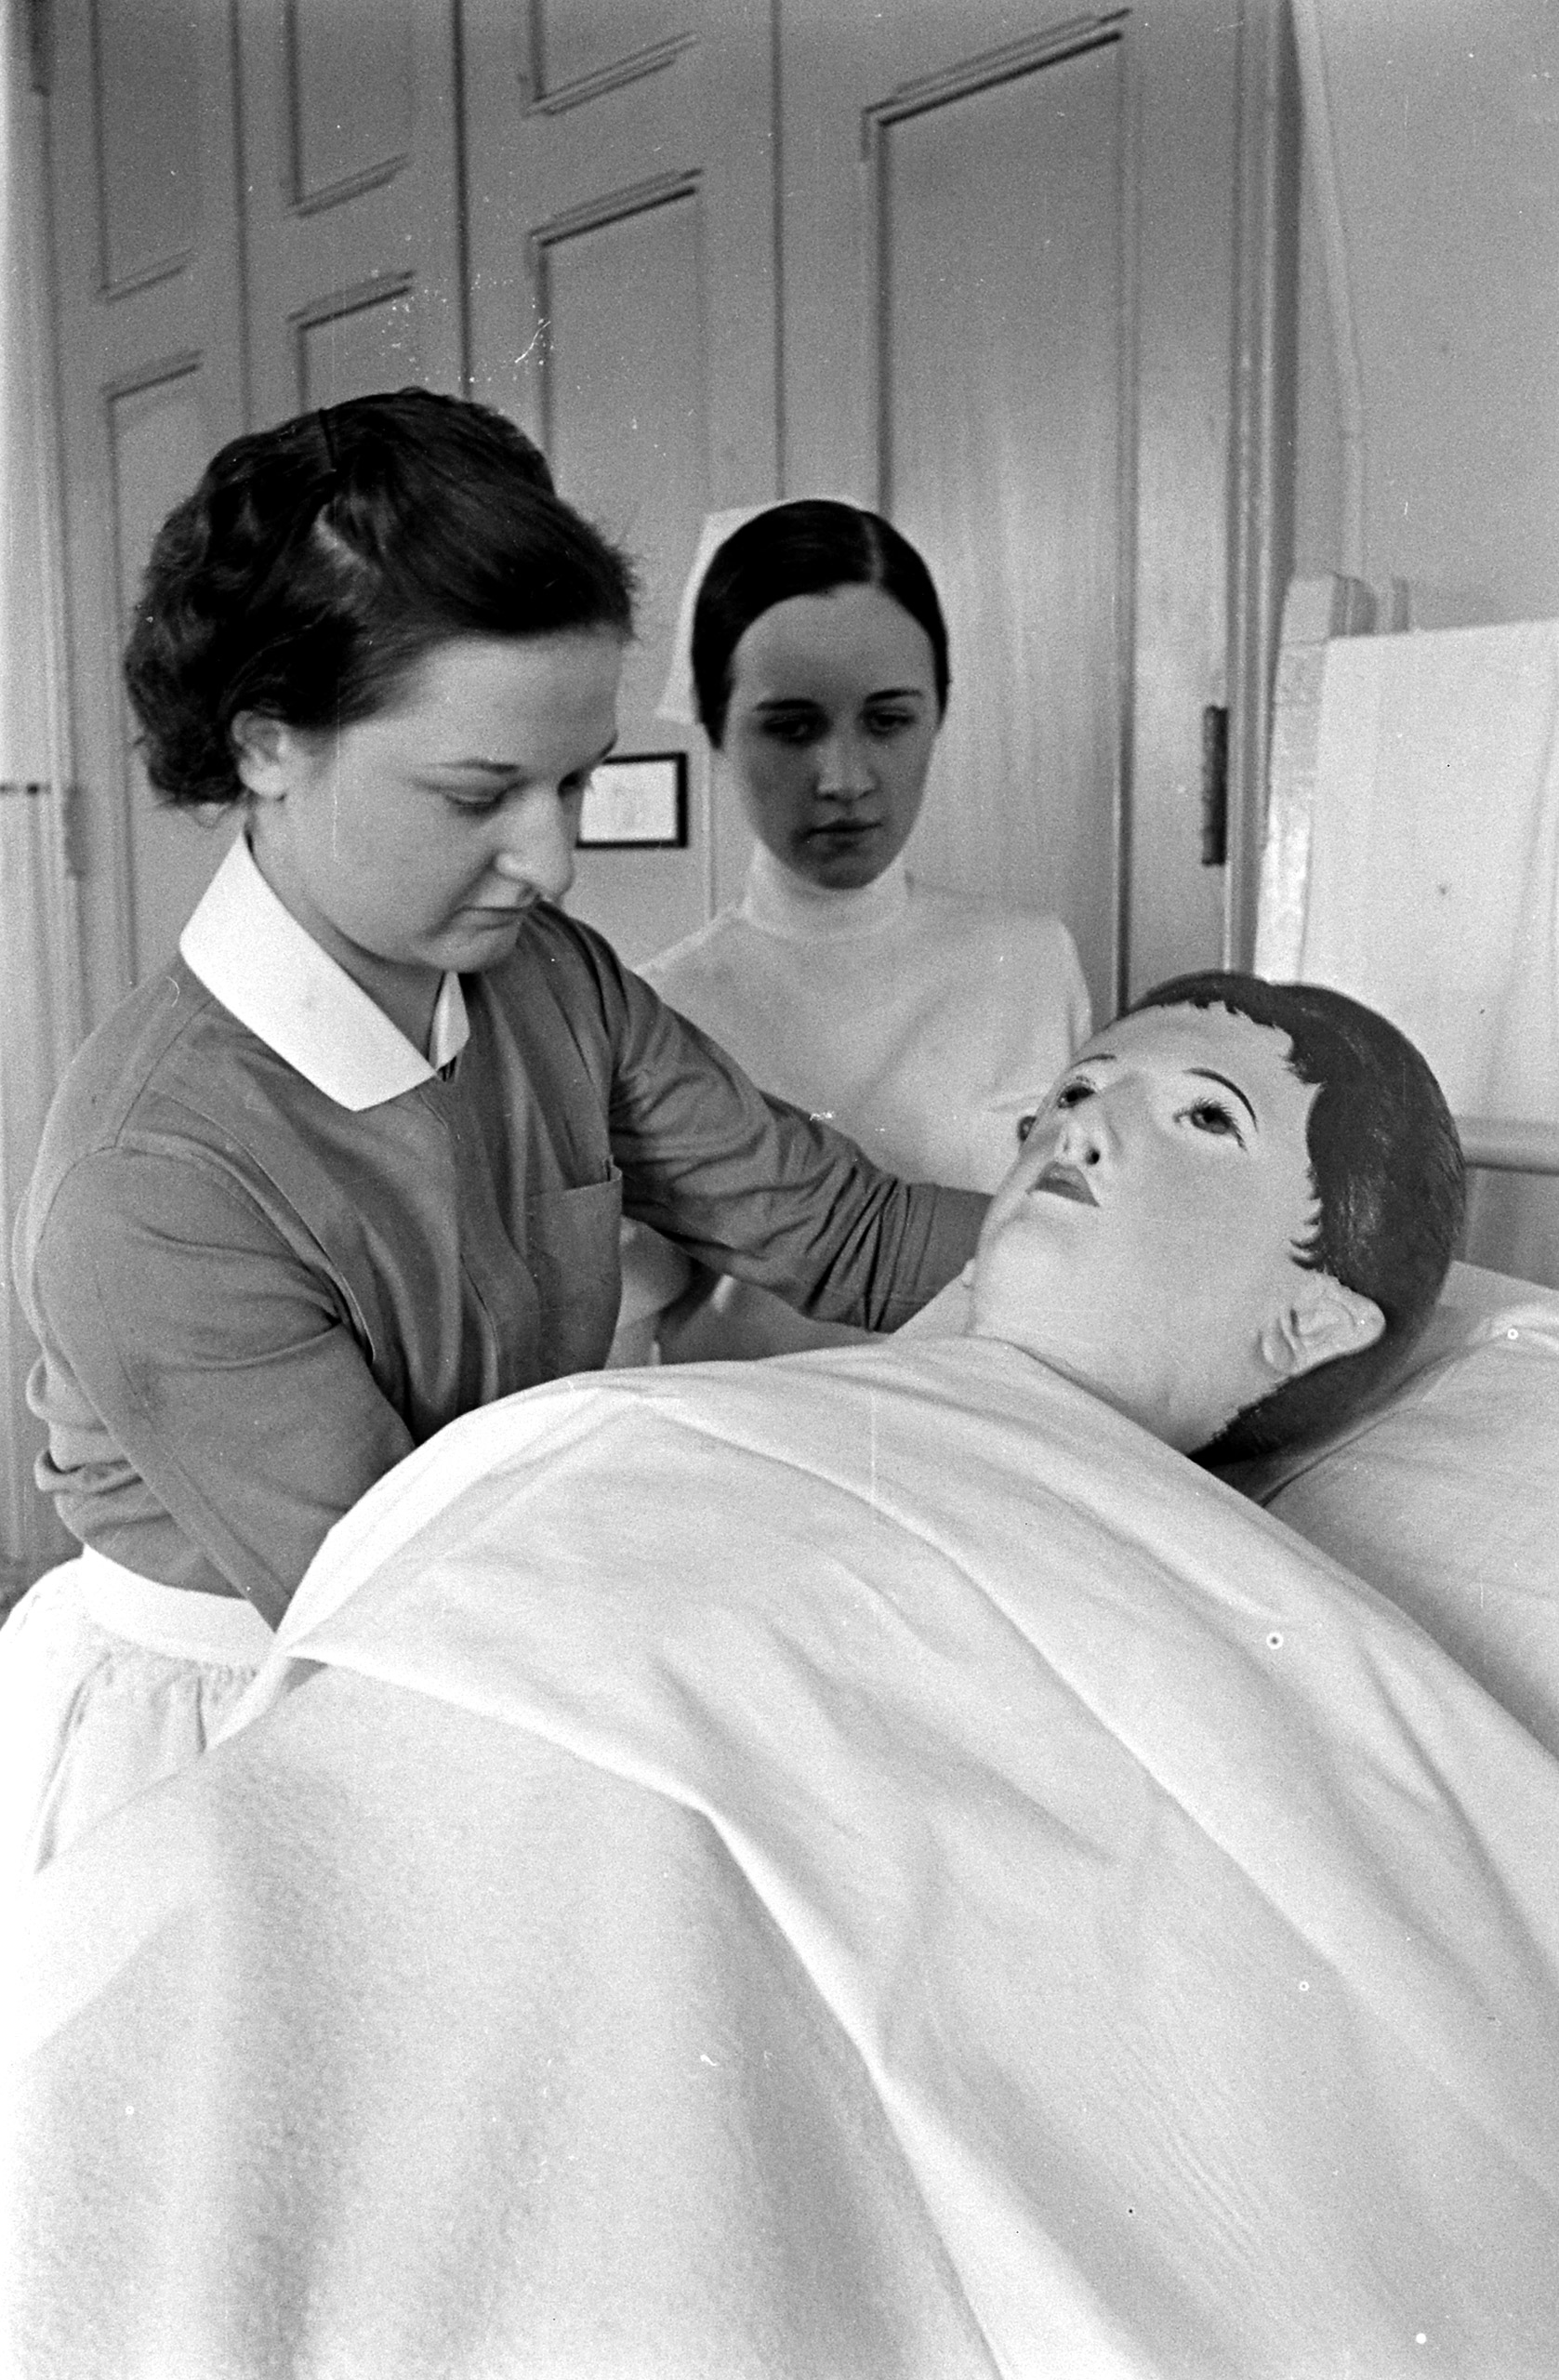 """<b>Caption from LIFE.</b> In the first month the new student learns to make beds. She begins with a dummy known in the Roosevelt Hospital as """"Helen Chase."""" Behind stands instructor in nursing arts."""